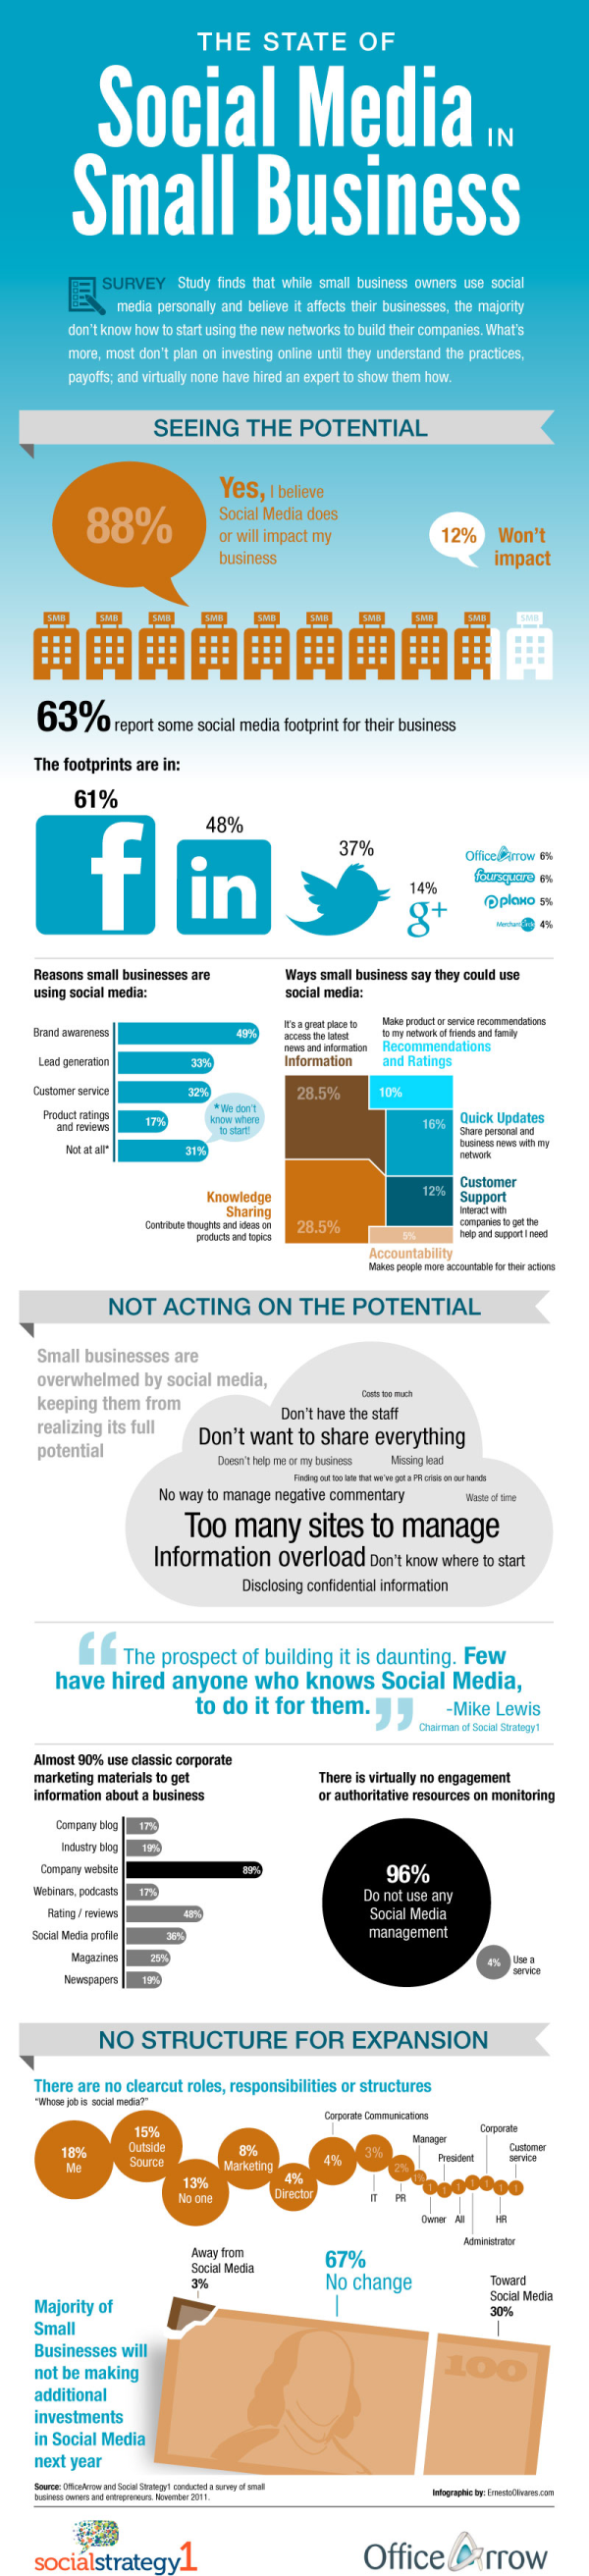 Social Media in Small Business resized 600